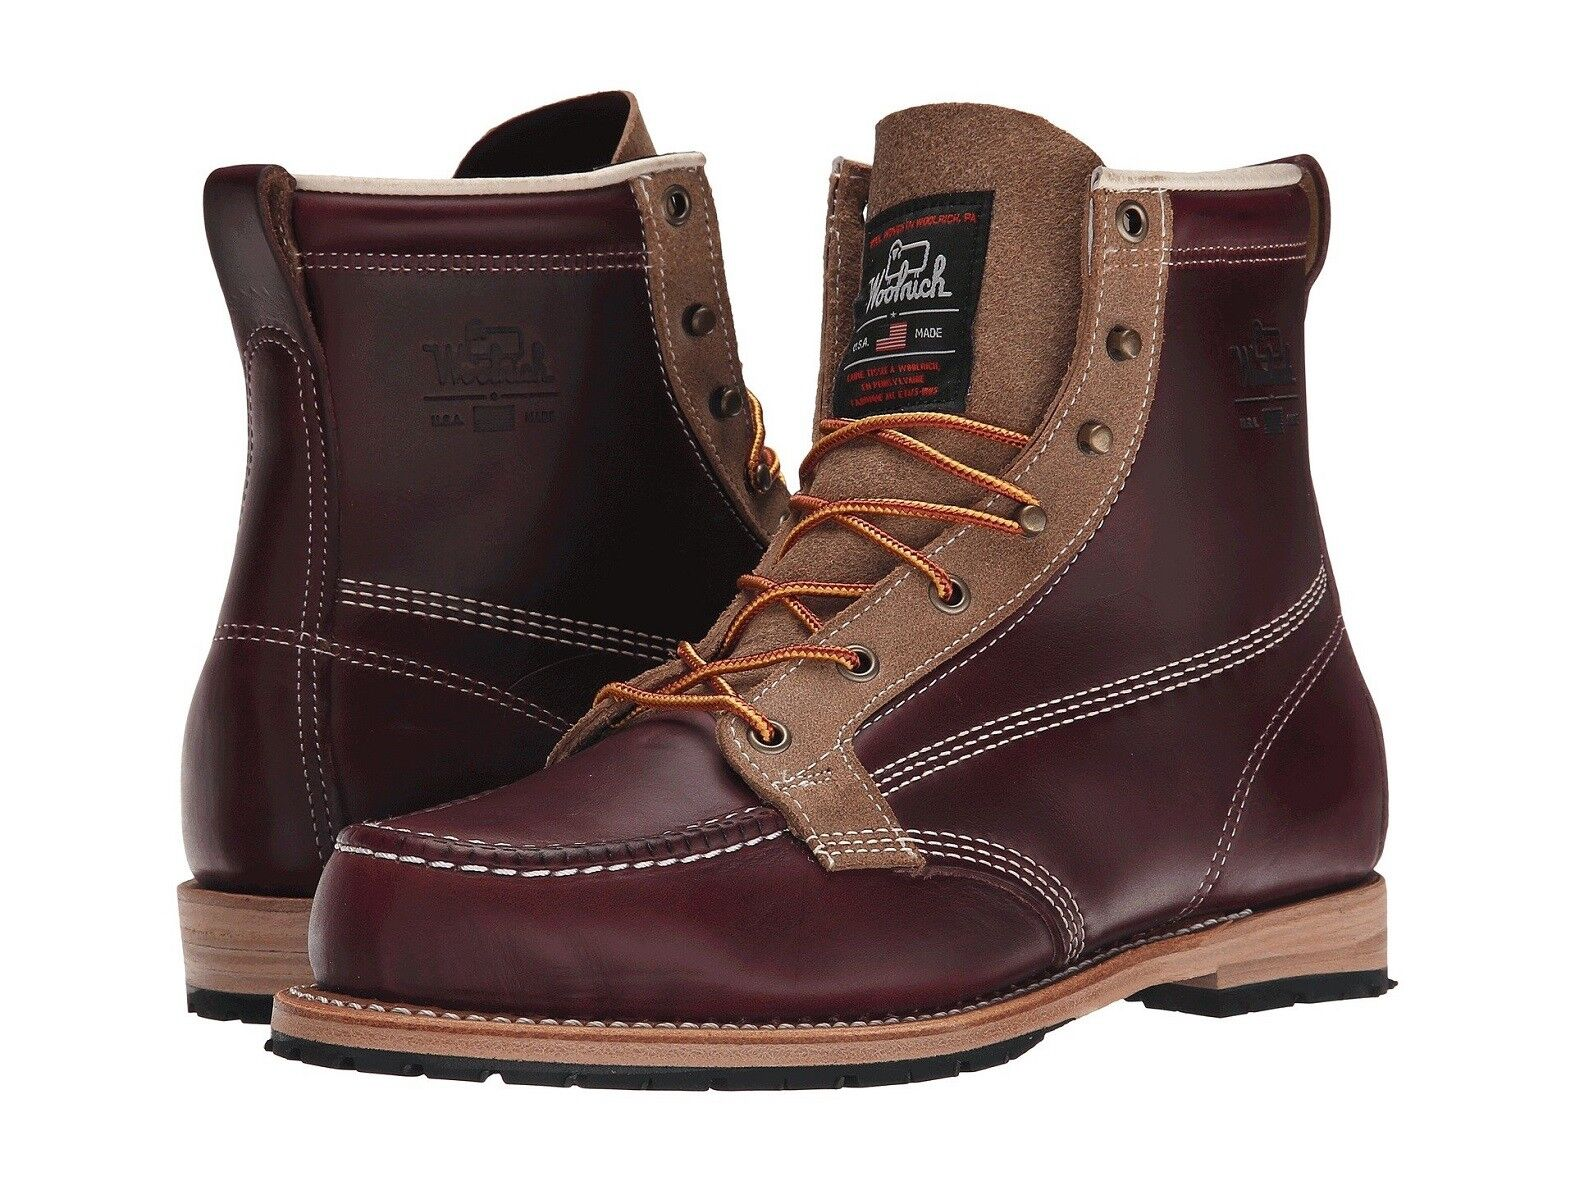 WOOLRICH Woodsman Horween Uomo 6 in Pelle  Vibram Stivali prodotto in USA NUOVO